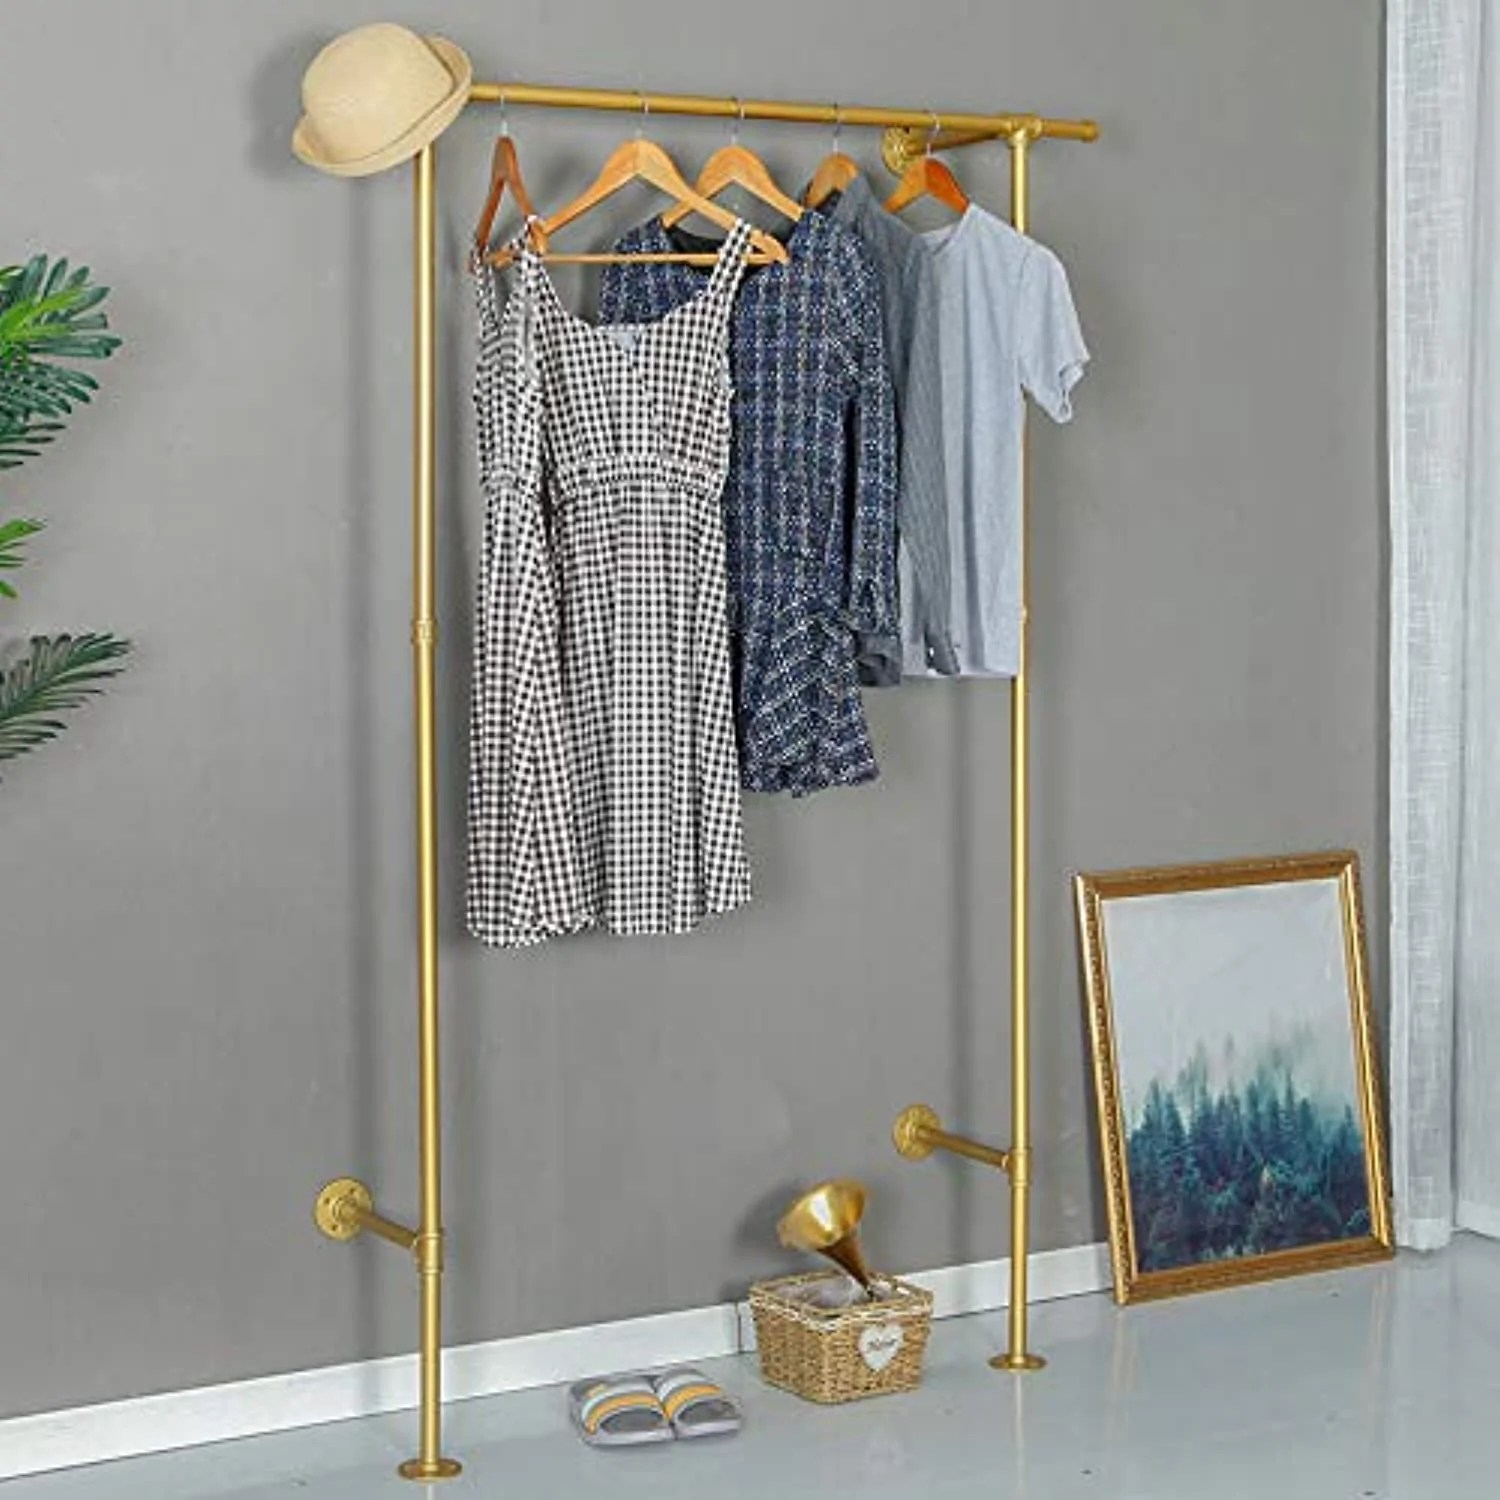 industrial pipe clothing vintage rolling rack on wall gold